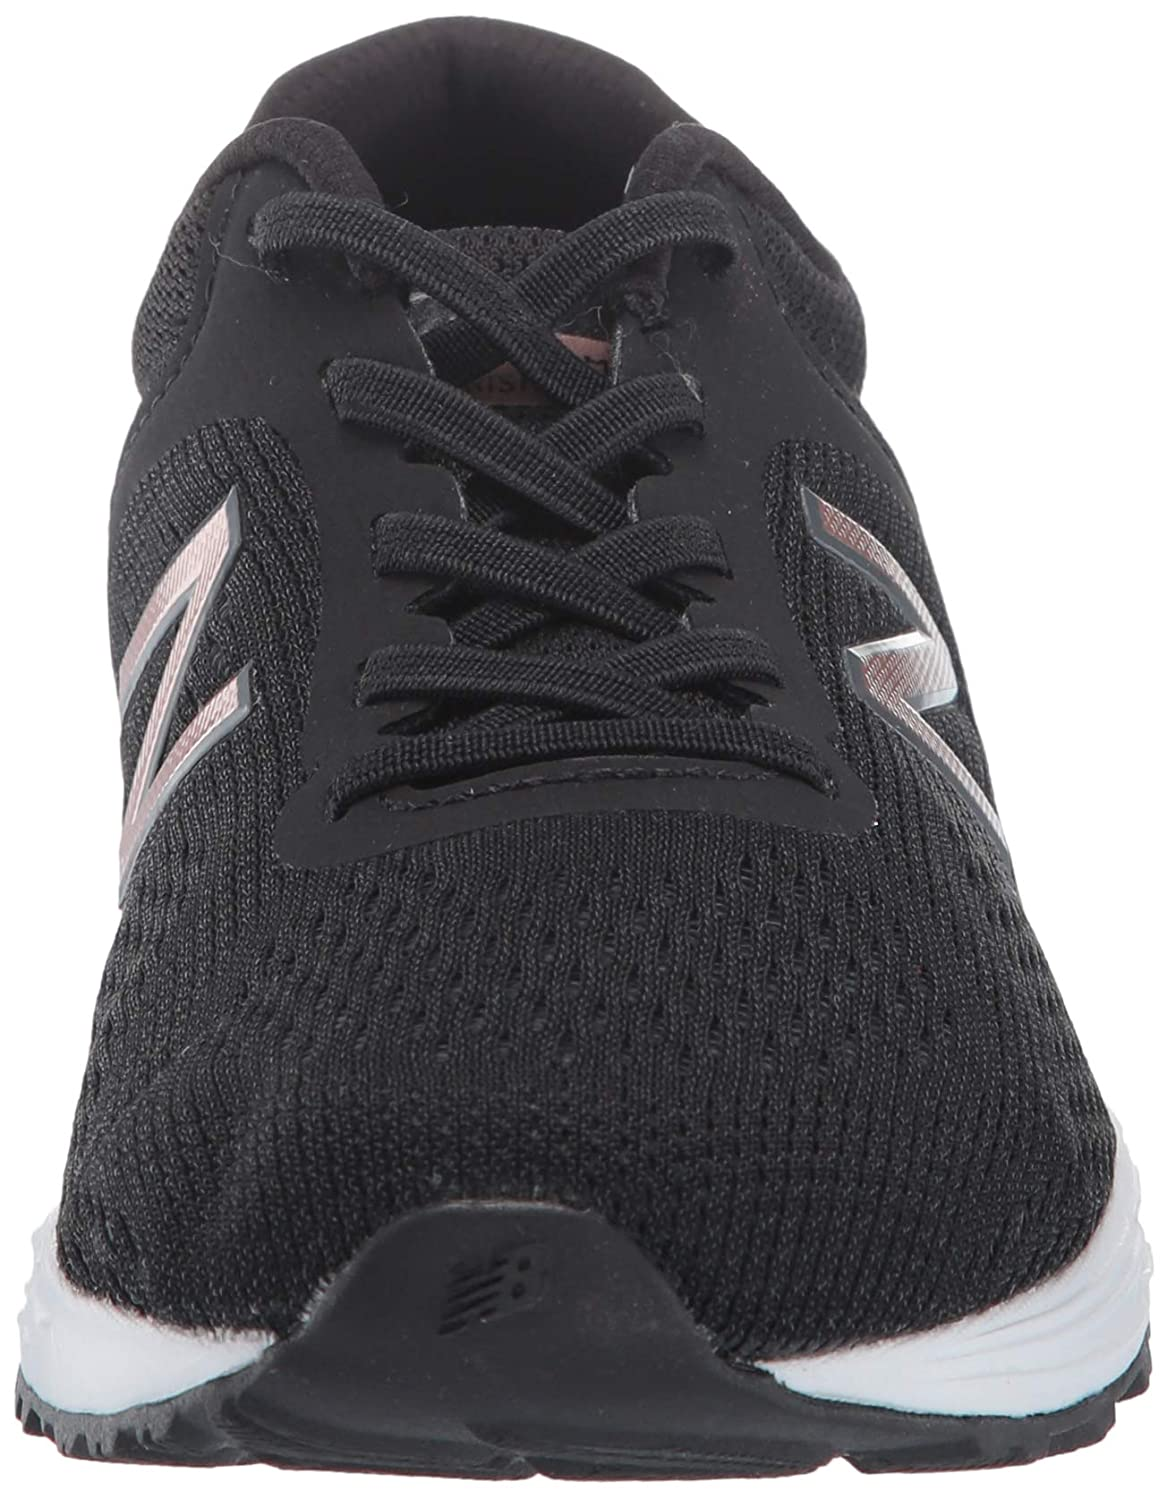 New Balance - - Unisex-Baby IAARIV2 Schuhe Black/Rose Gold